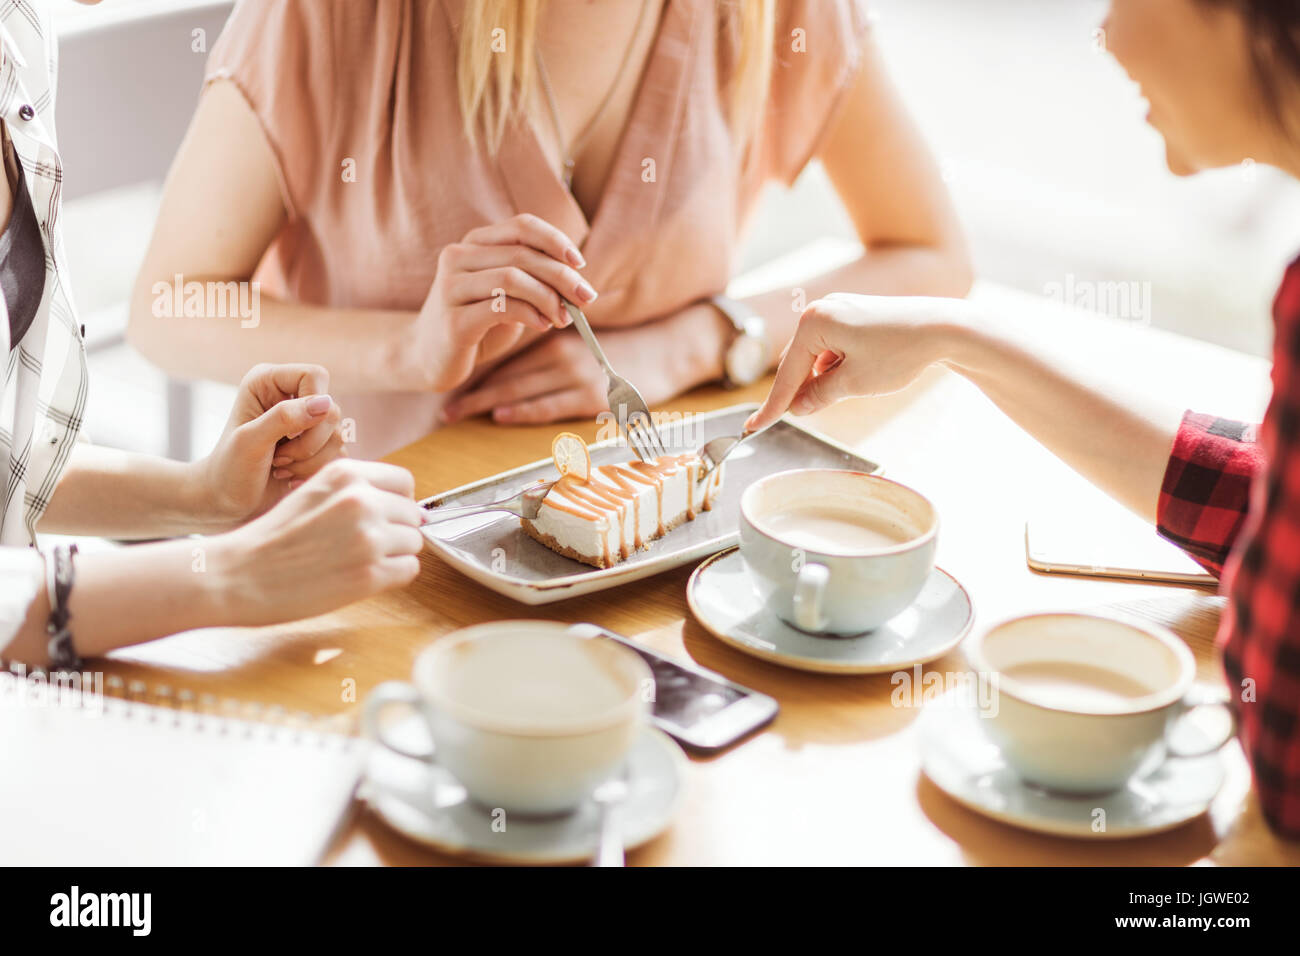 young girls eating cake and drinking coffee at cafe, coffee break - Stock Image